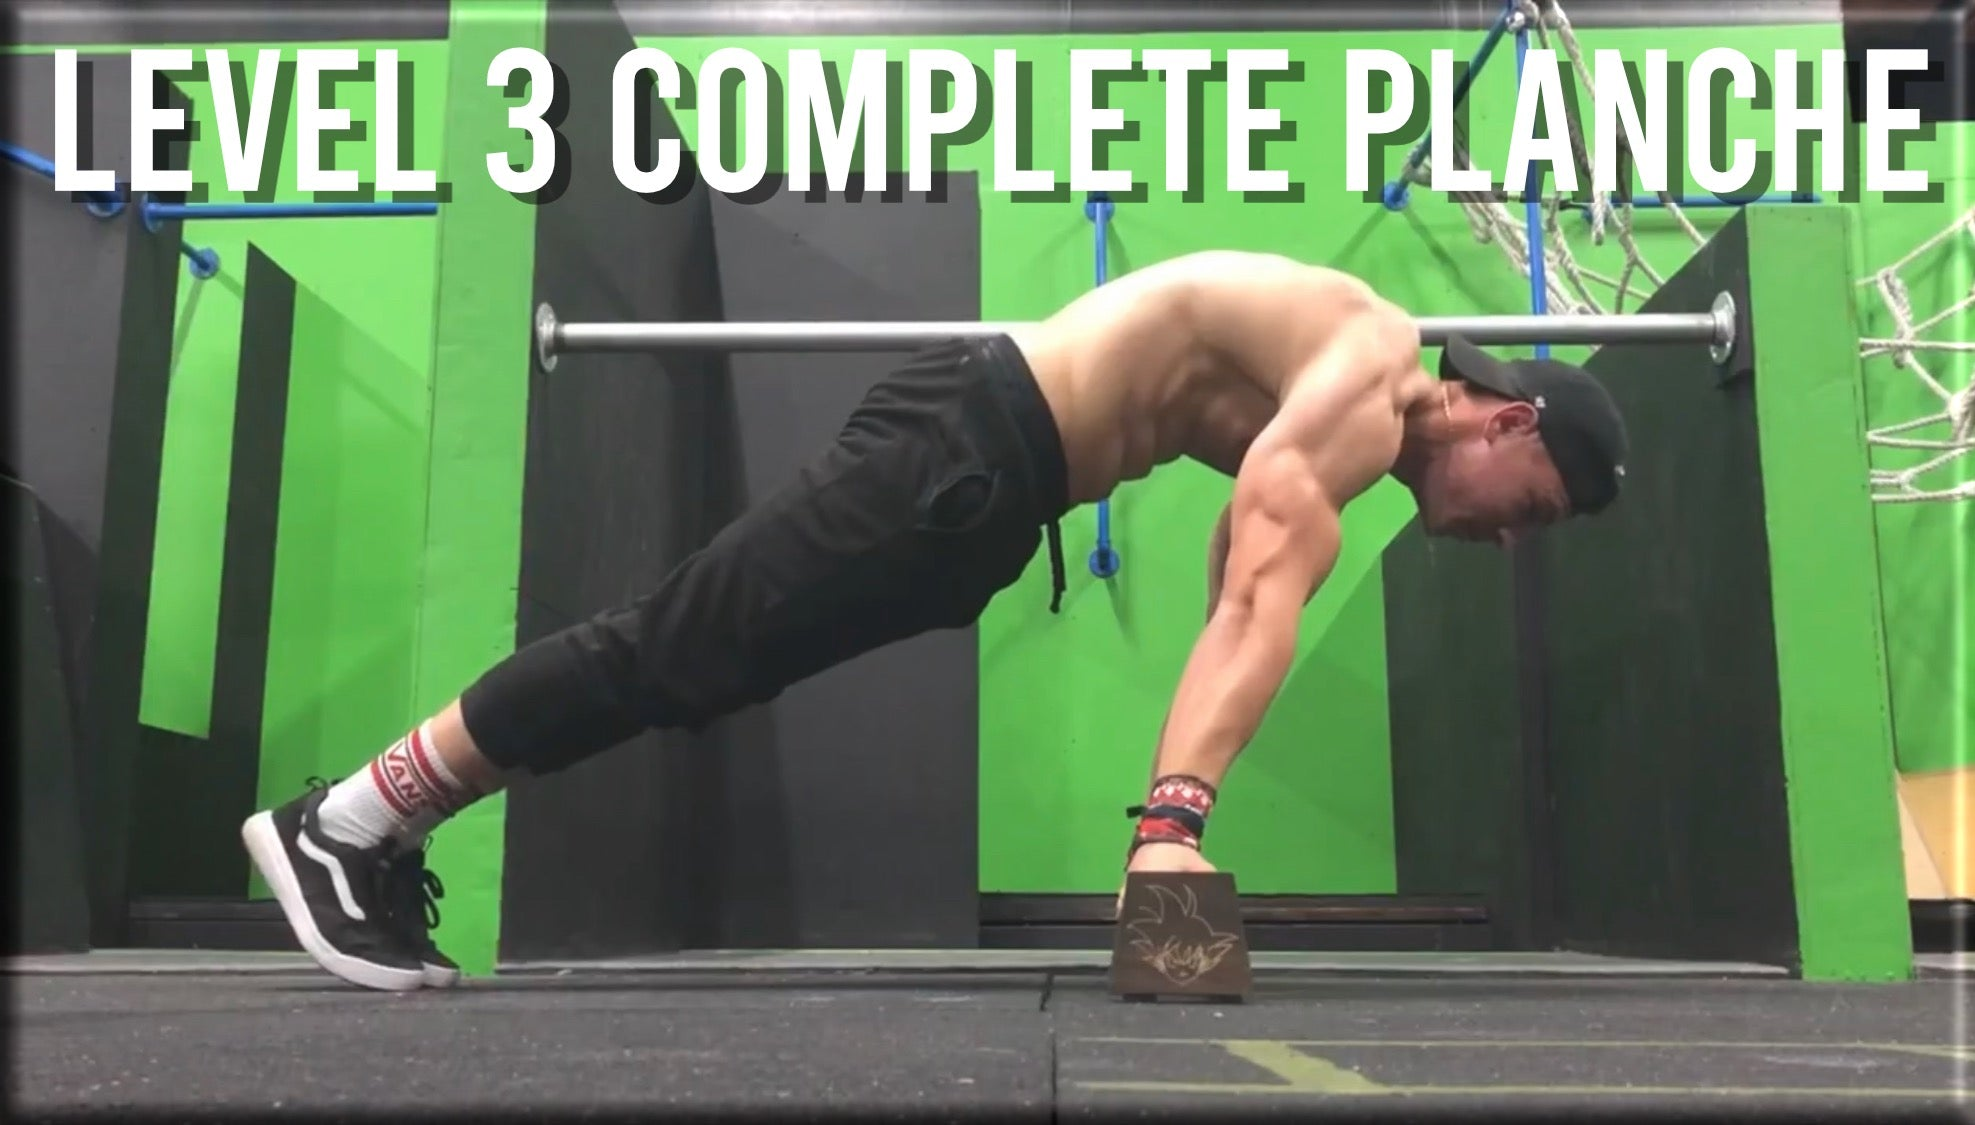 Level 3 Complete Planche